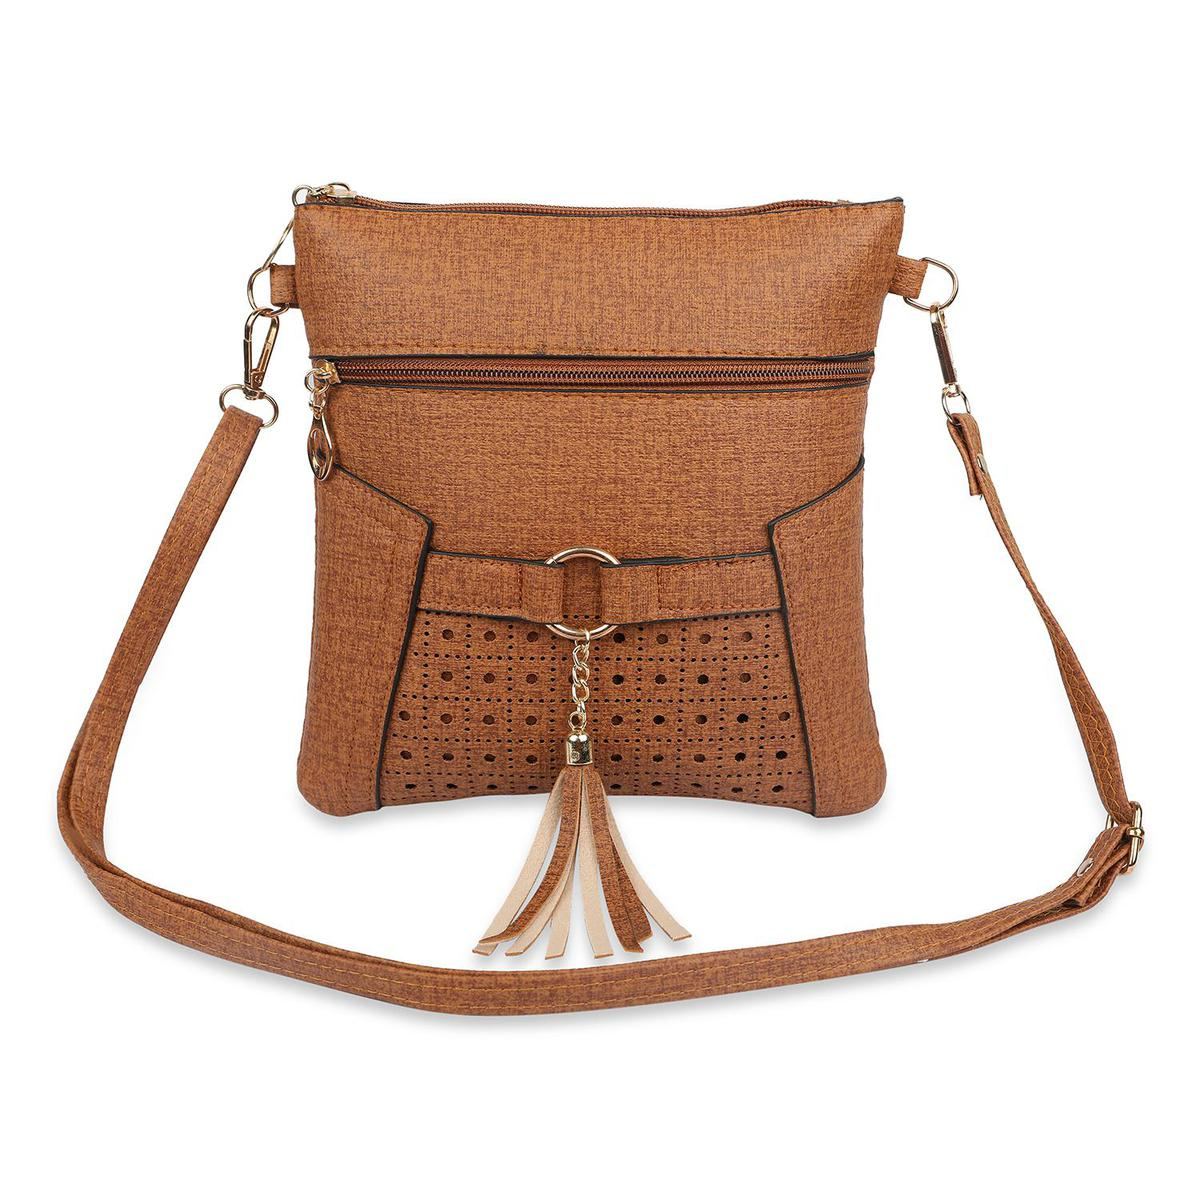 NFI essentials - Sling Cross Body Hand Bag with Cut works and Tassel (Brown)